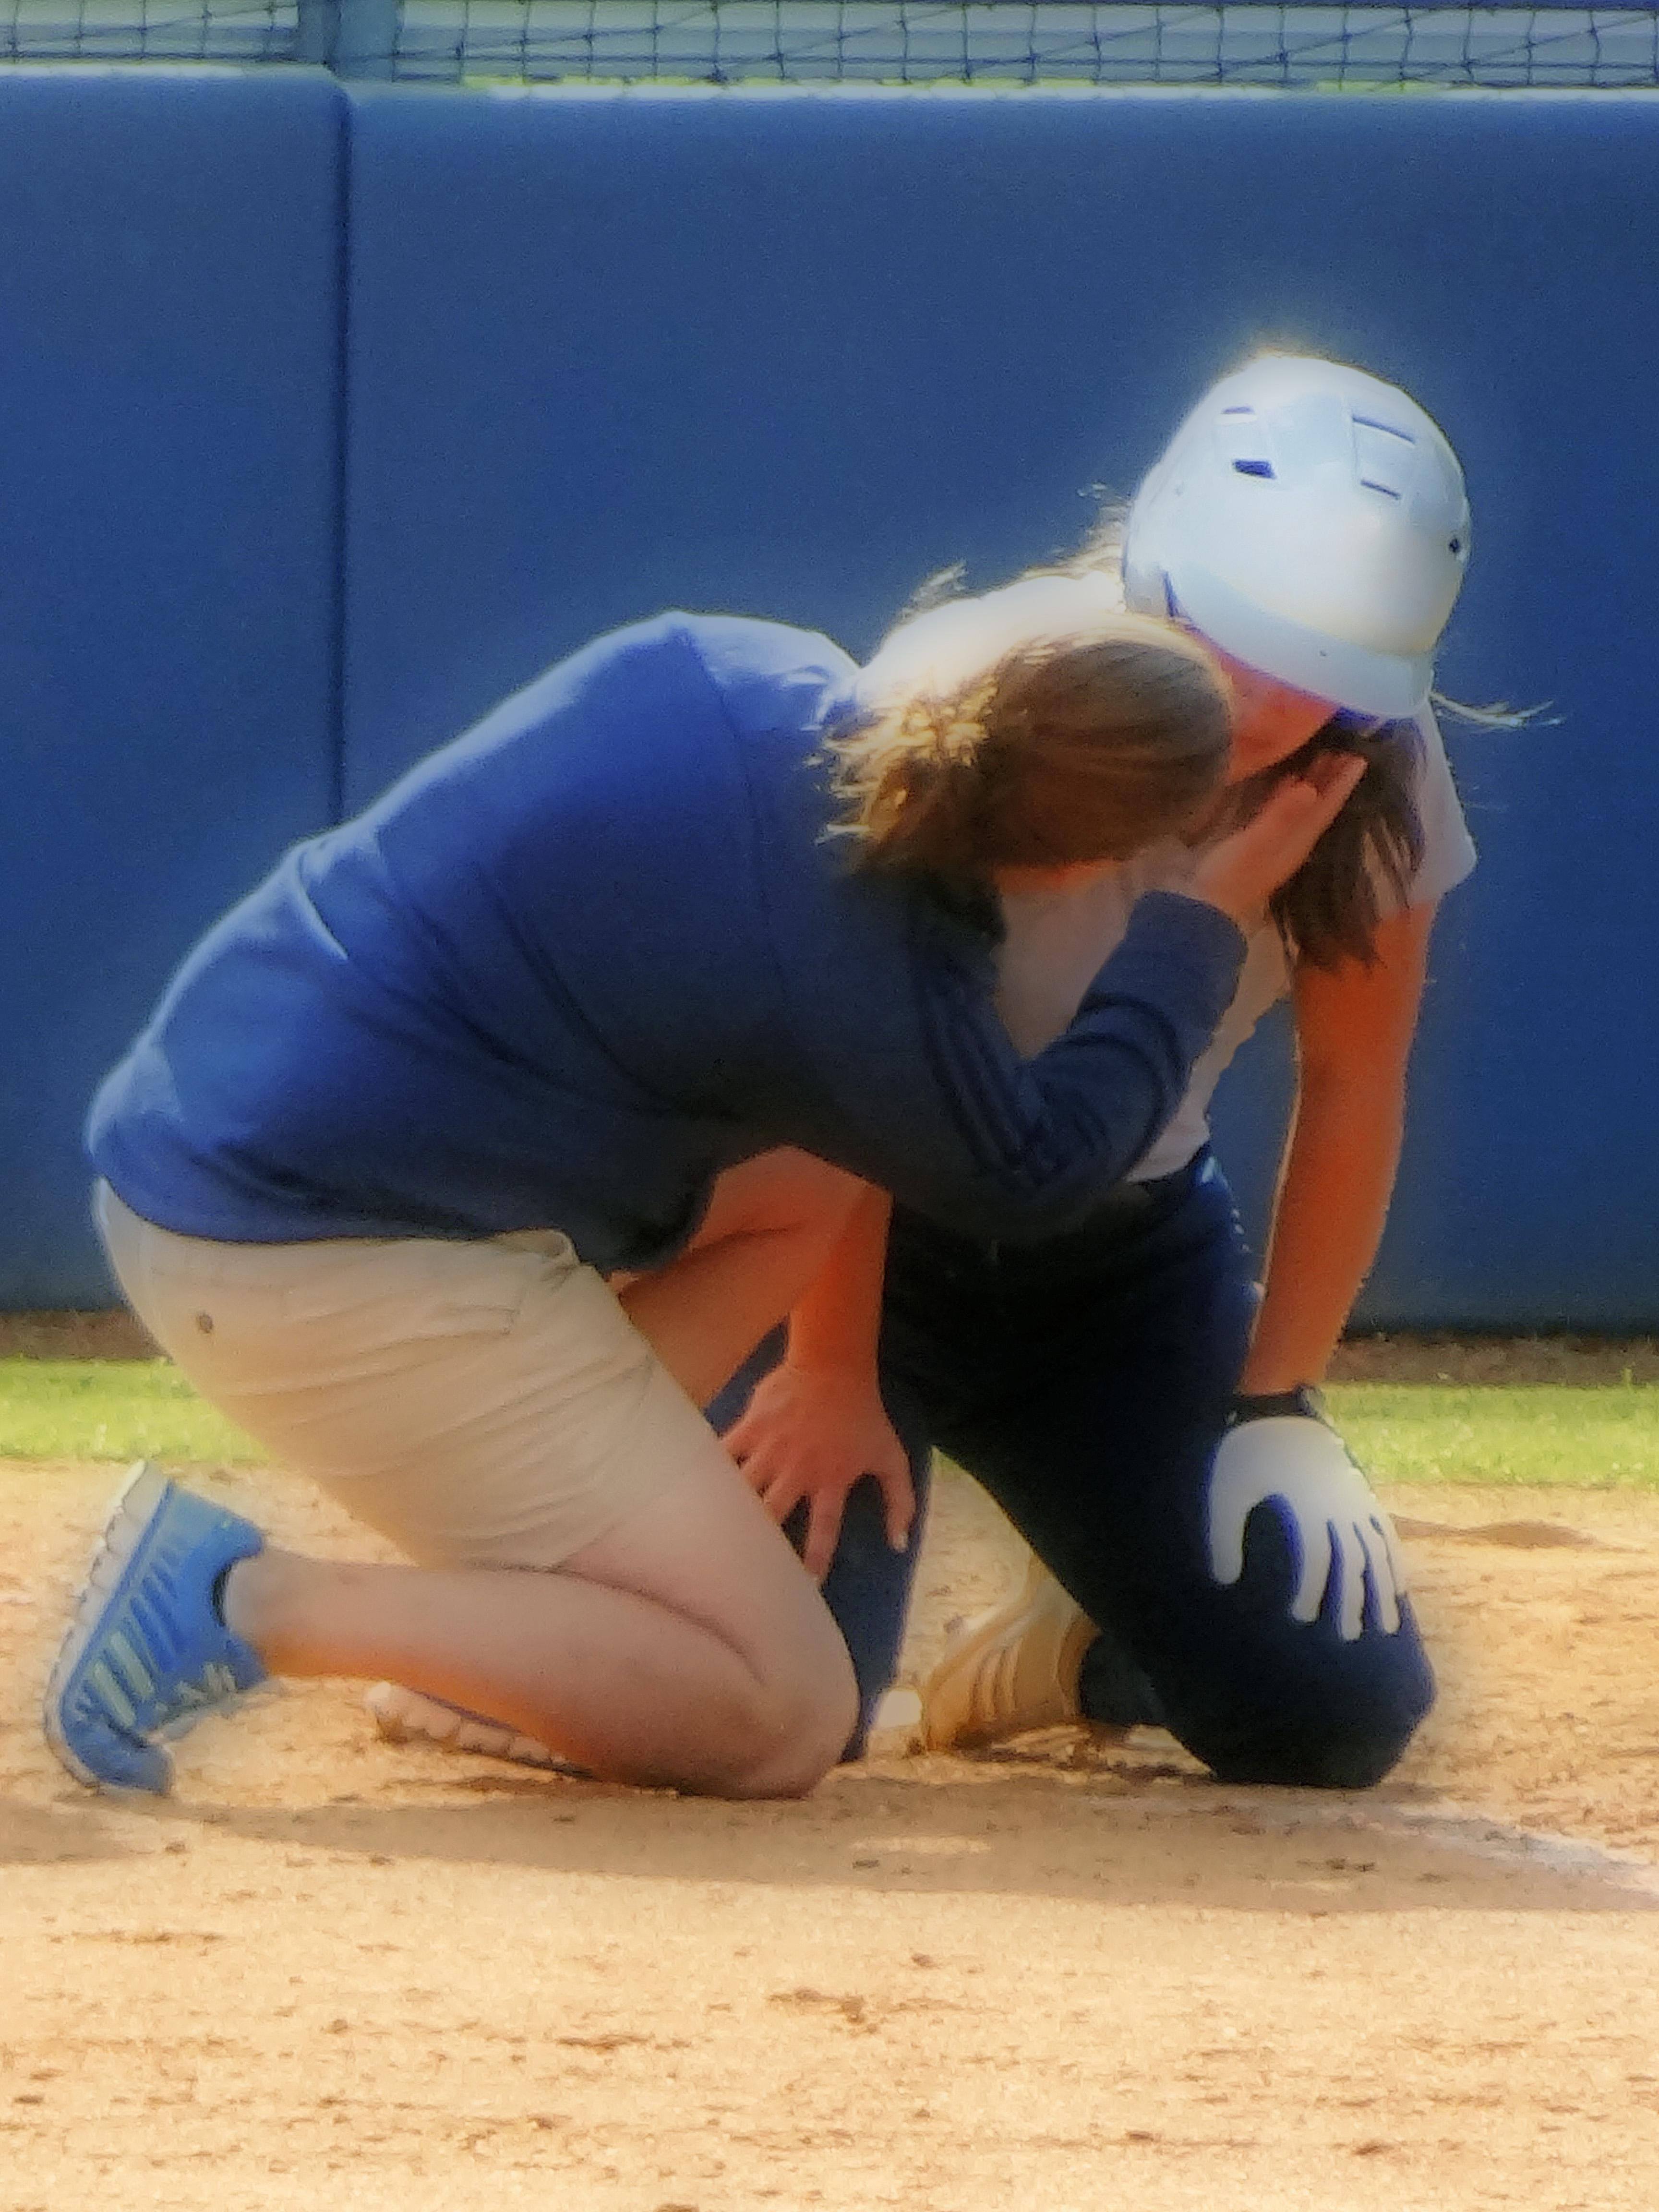 softball player kneeling with injury